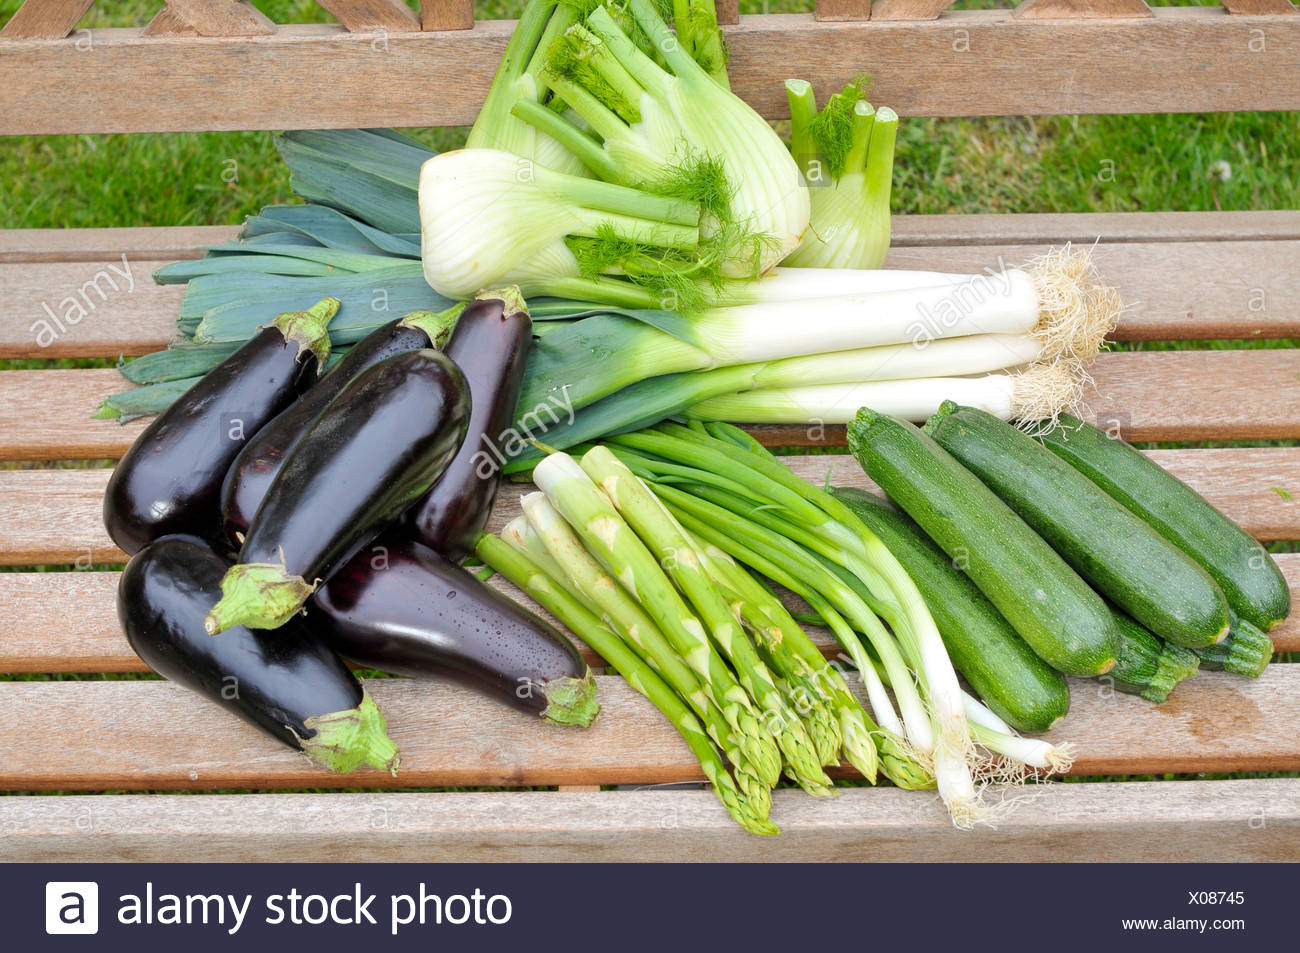 Green asparagus, eggplants, zucchini, spring onions, fennel, leeks Stock Photo